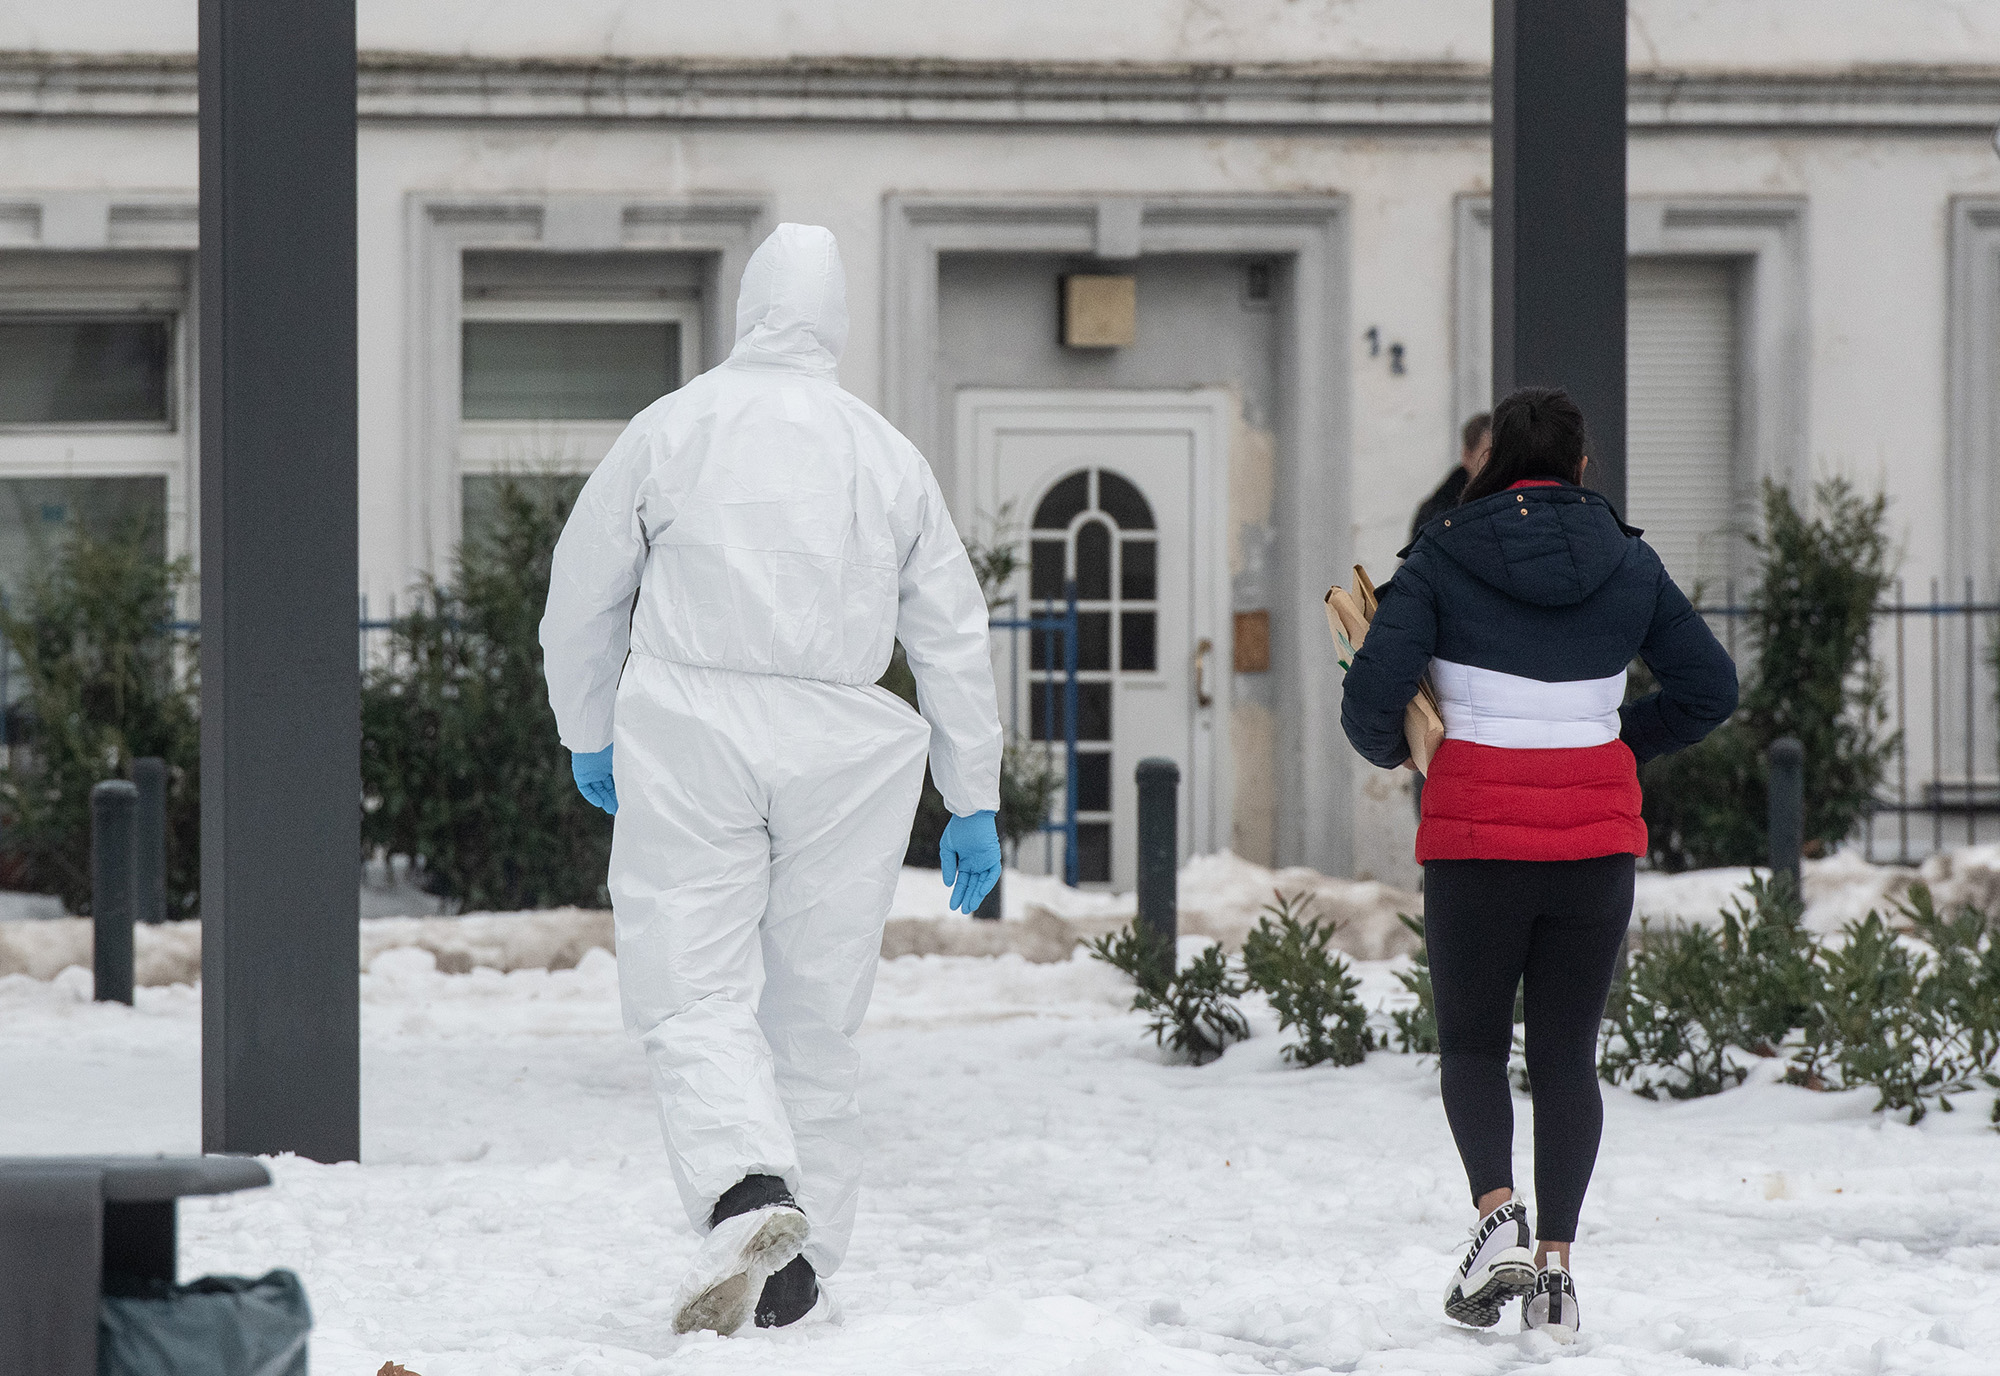 Apolice officer wearing a protective suit escorts a woman to a house in Hamm, Germany on Tuesday.